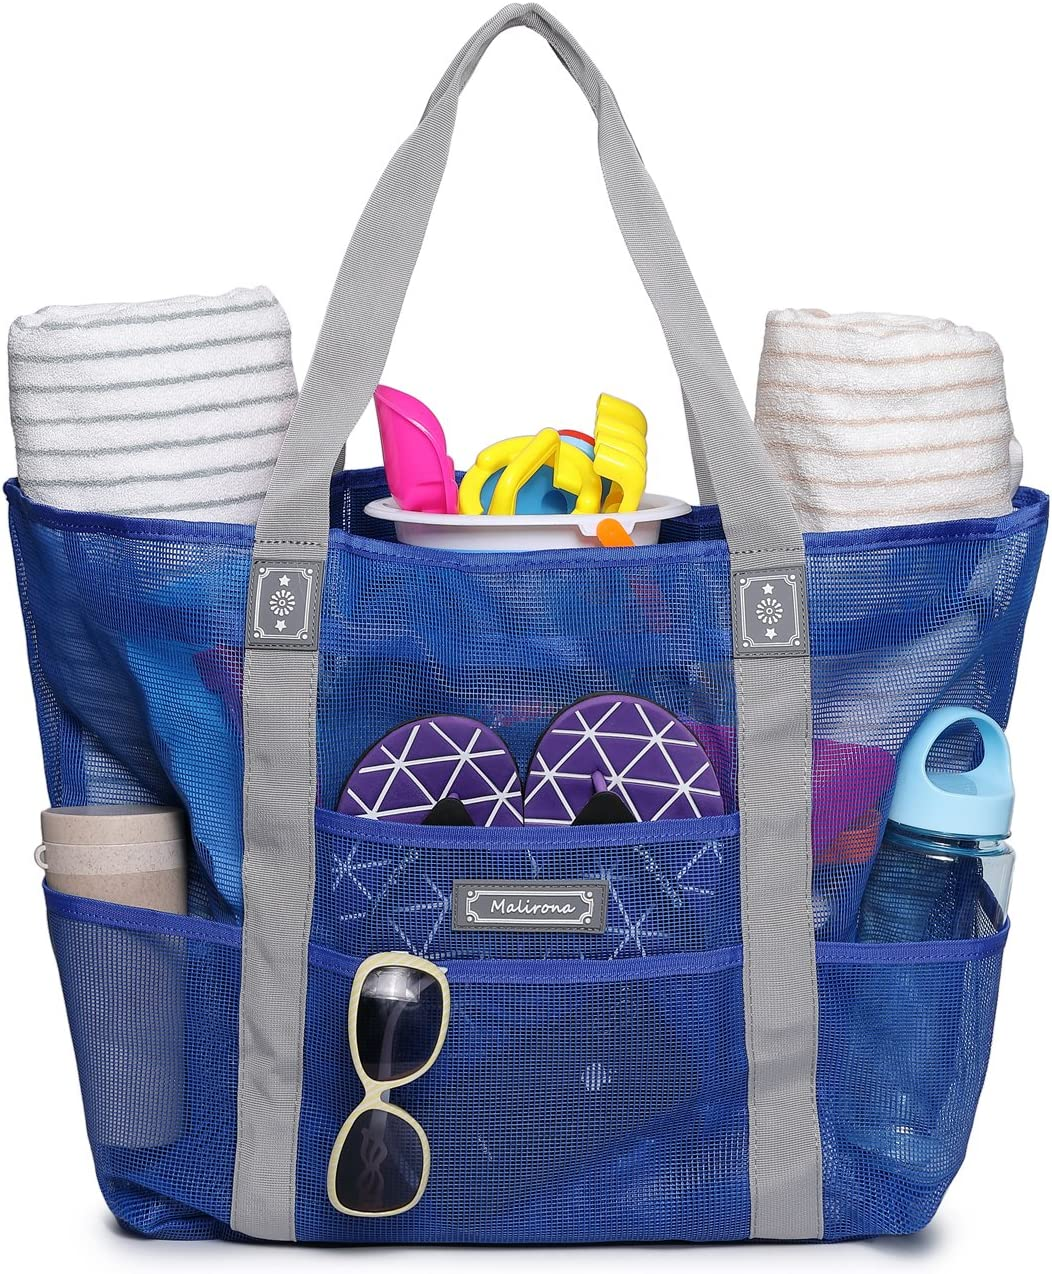 Toy Tote Bag Large Grocery /& Picnic Tote with 8 Pockets Top Zipper Blue Malirona Mesh Beach Bag